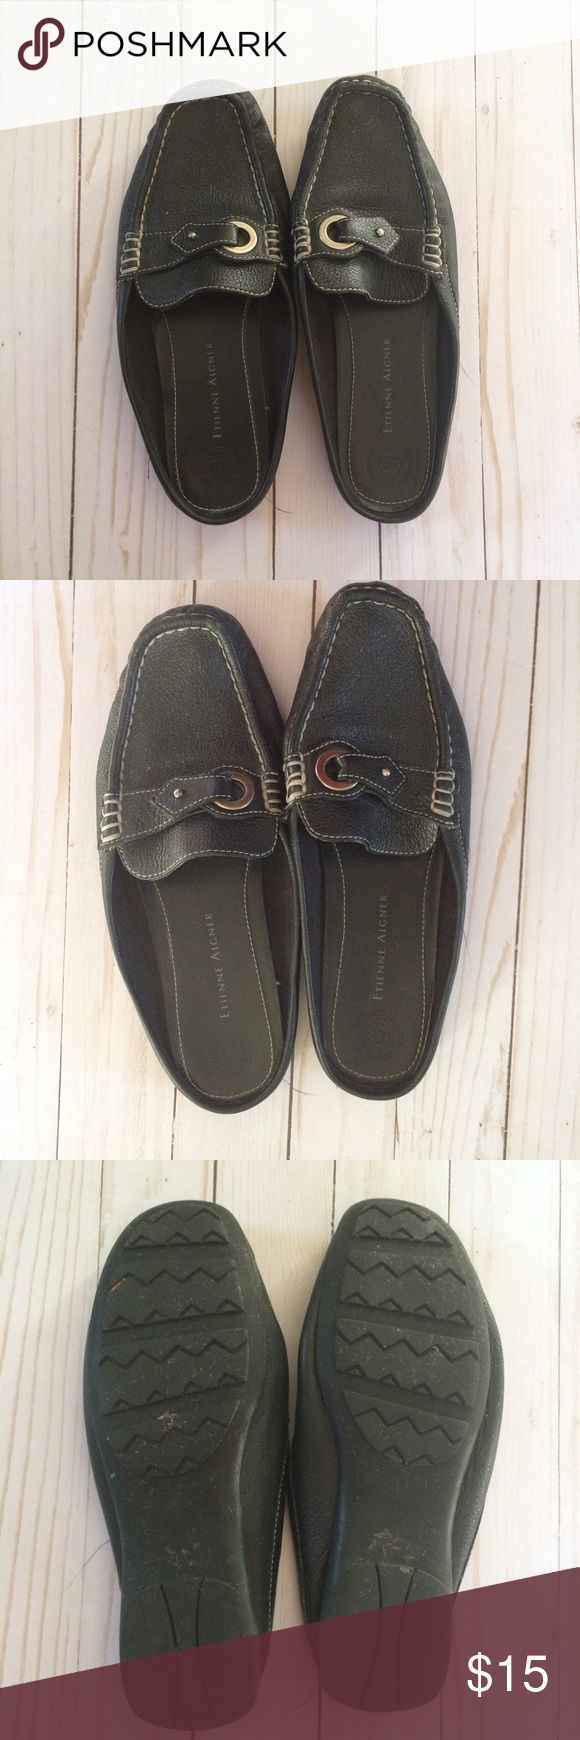 Etienne Aigner Whisper Slip On Shoes Size 7.5 Previously used but in good condition. Show signs of wear Etienne Aigner Shoes